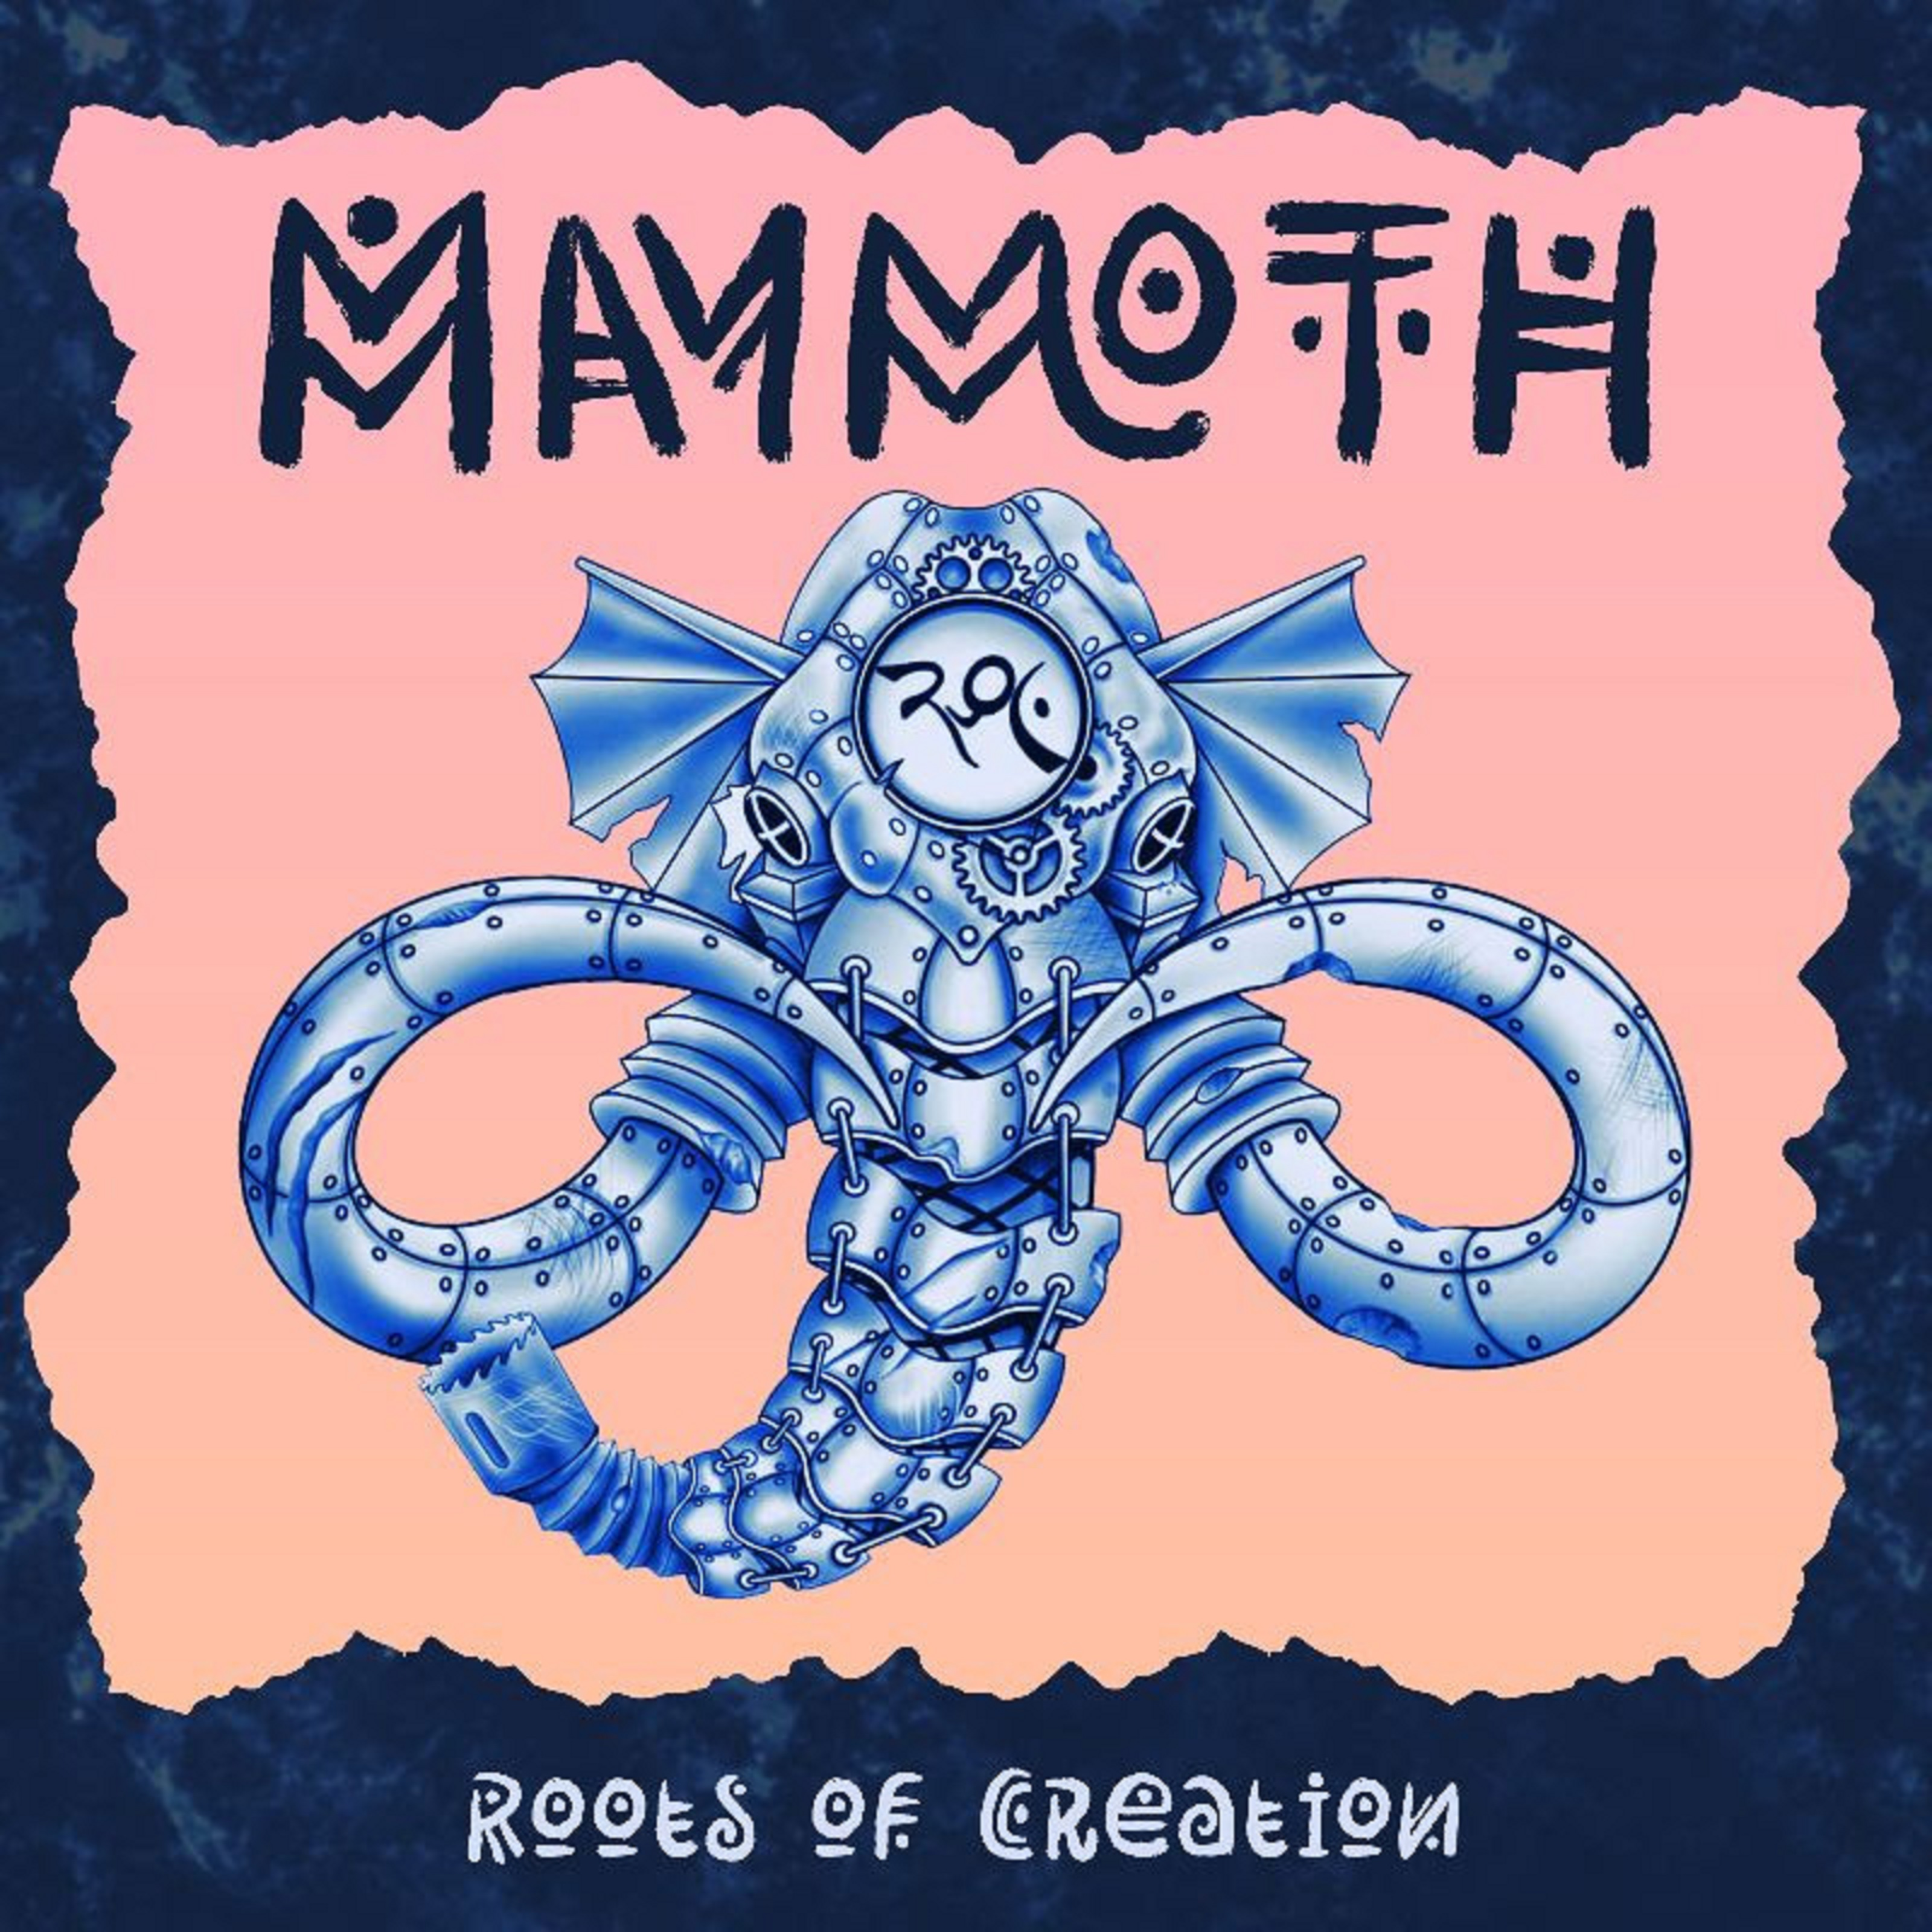 Roots of Creation Release Single 'Mammoth' + Kickstarter In Celebration of Upcoming Album